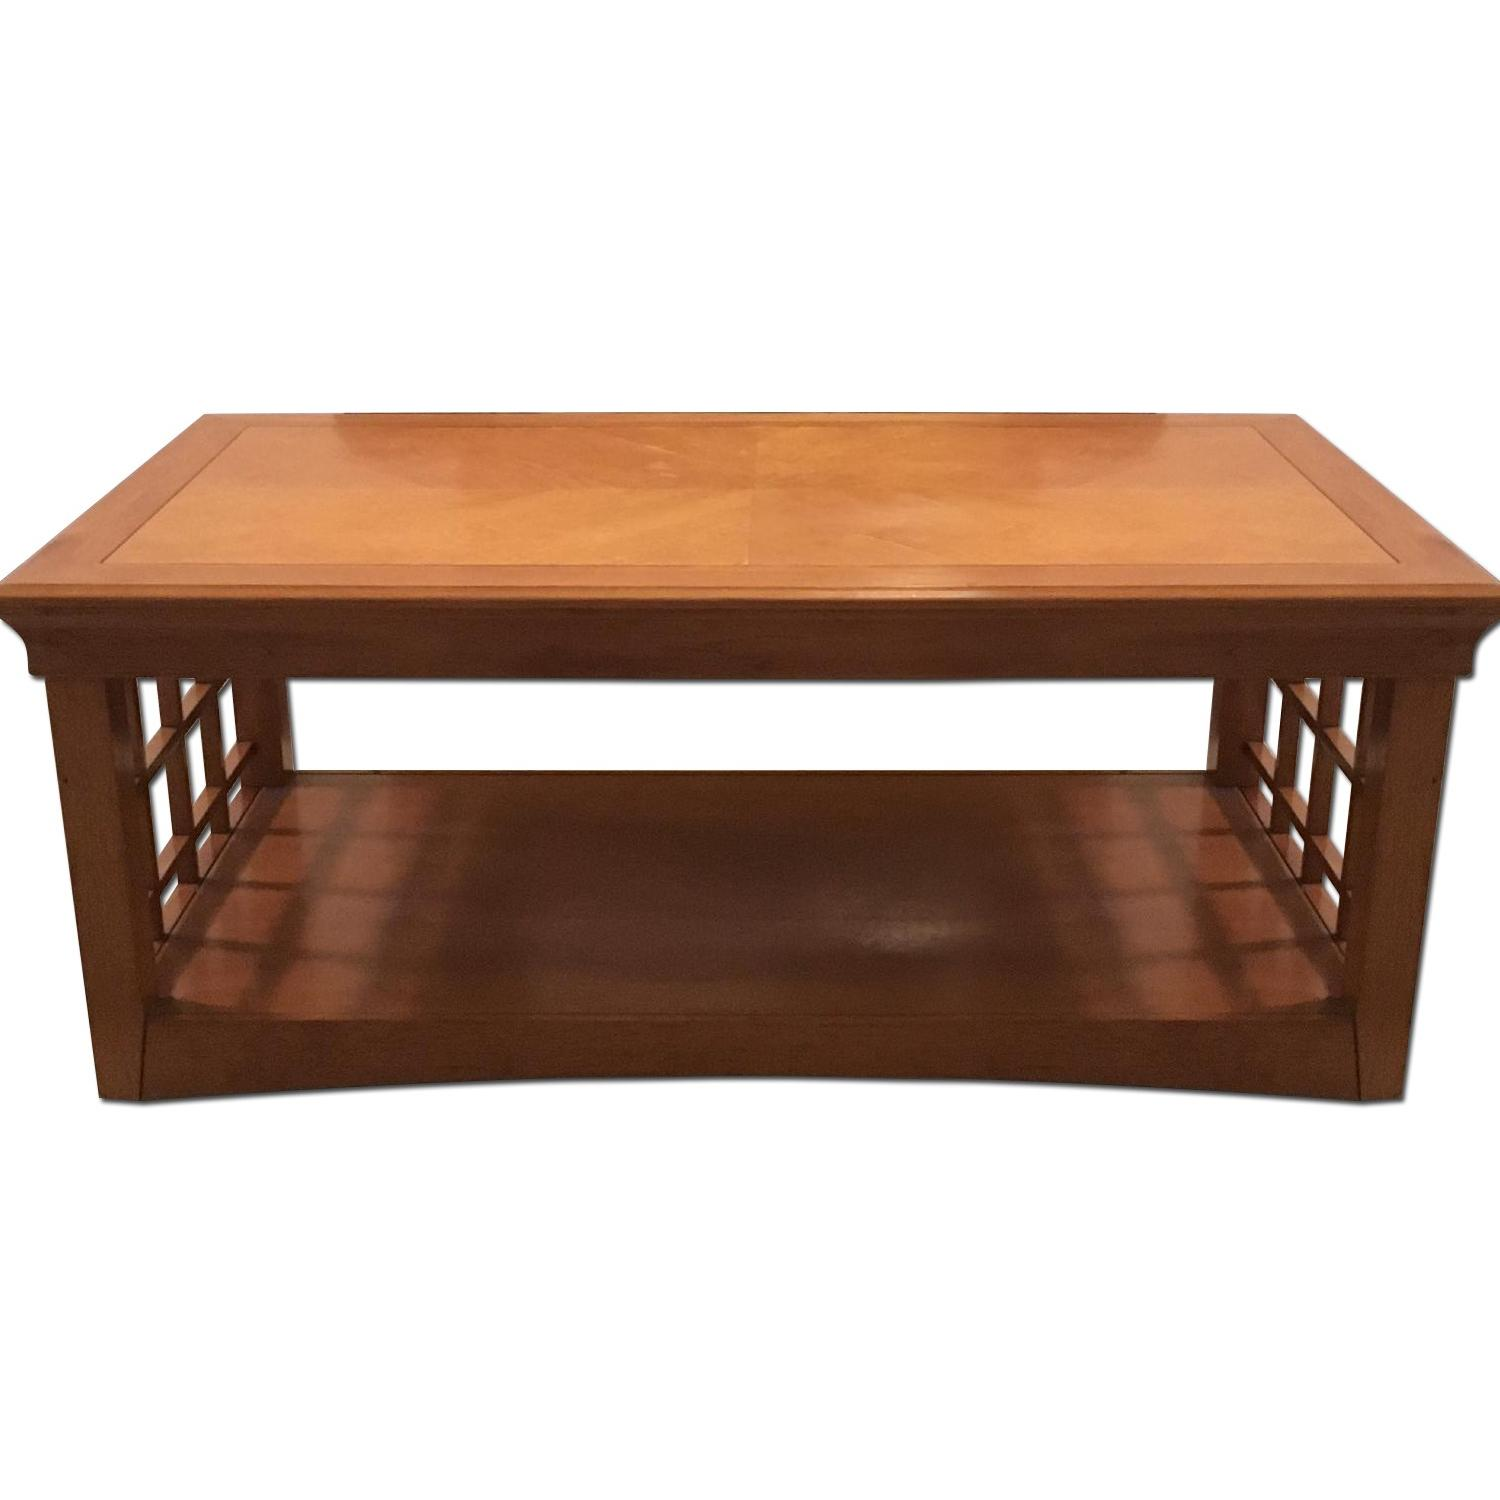 Furniture Options Wooden Coffee Table + 2 Matching End Tables - image-0